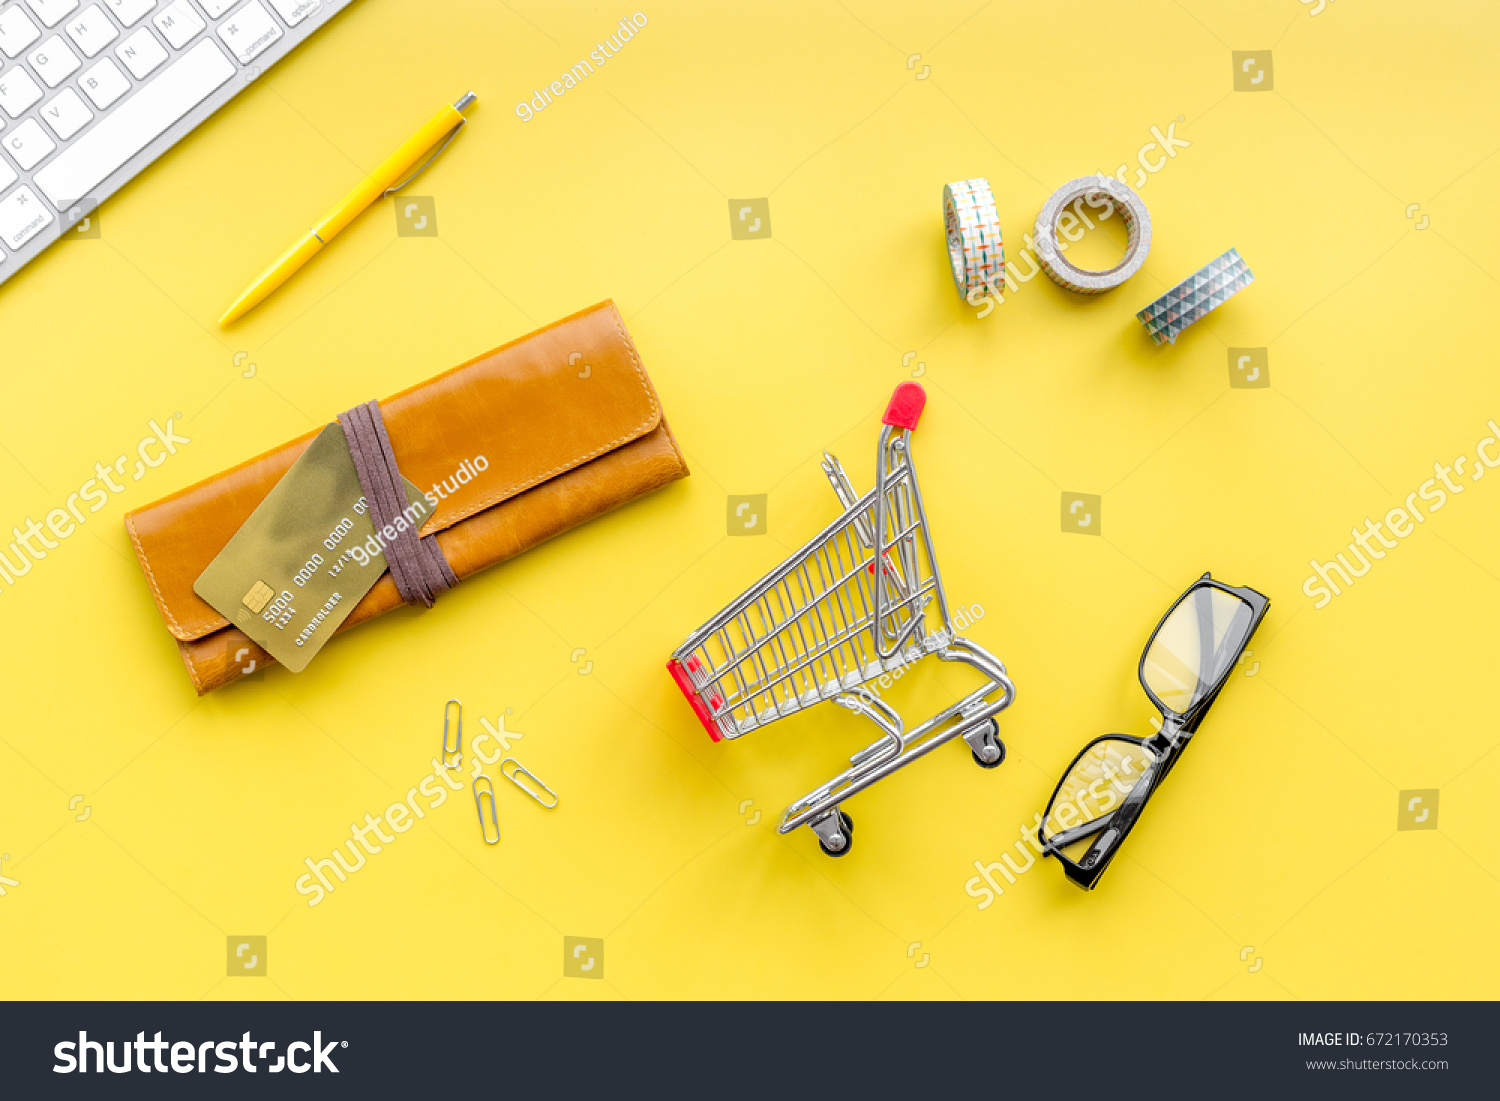 Shopping Online Store Bank Card Nearby Stock Photo Edit Now Circuitry Of An Electronic Calculator Royalty Free Photography Purse And Cart On Yellow